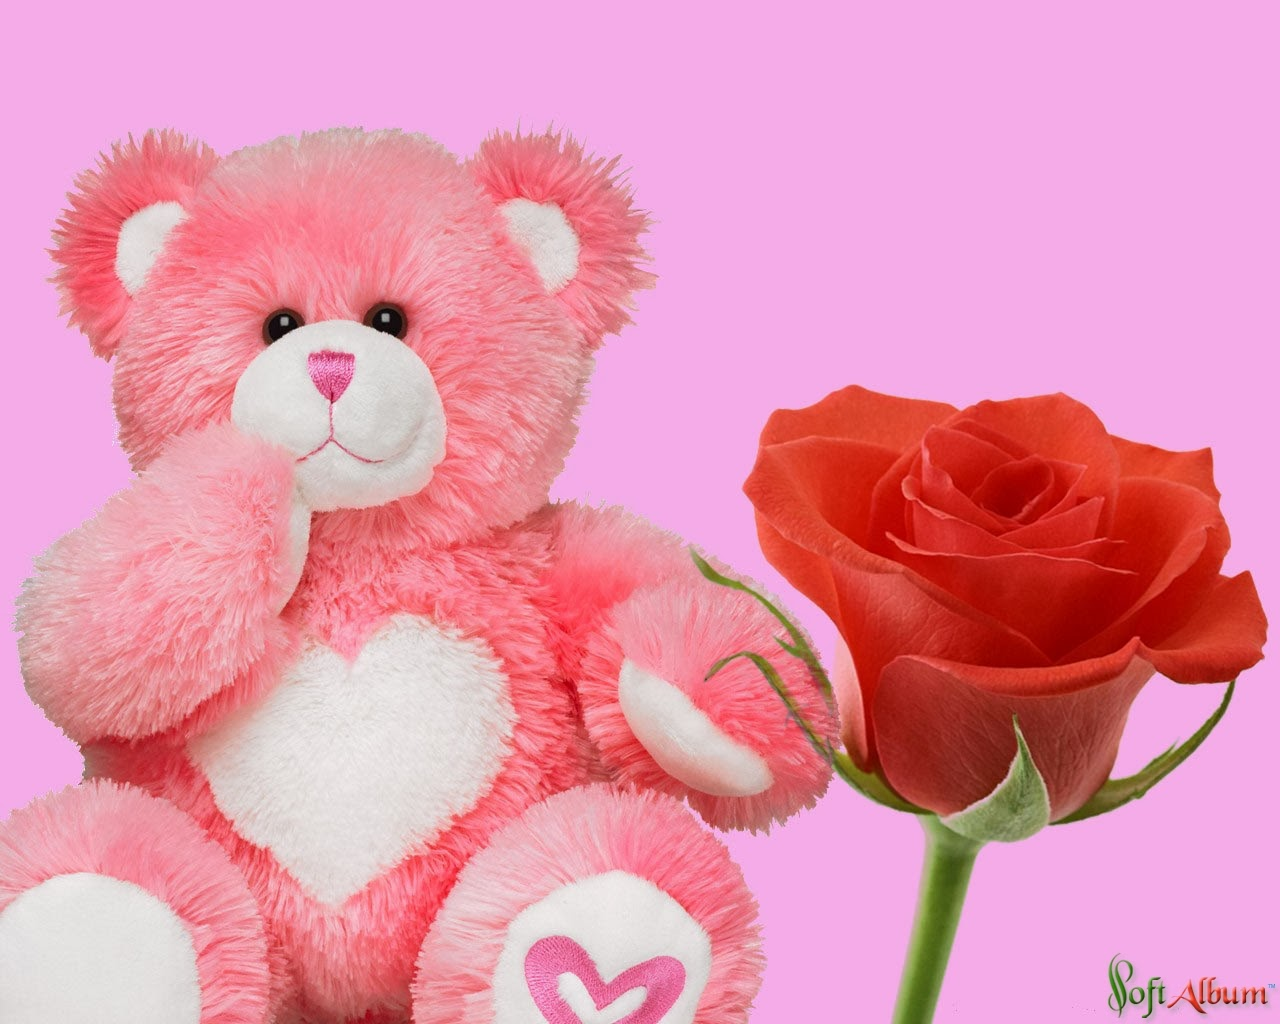 Pink Teddy Bear With Red Roses